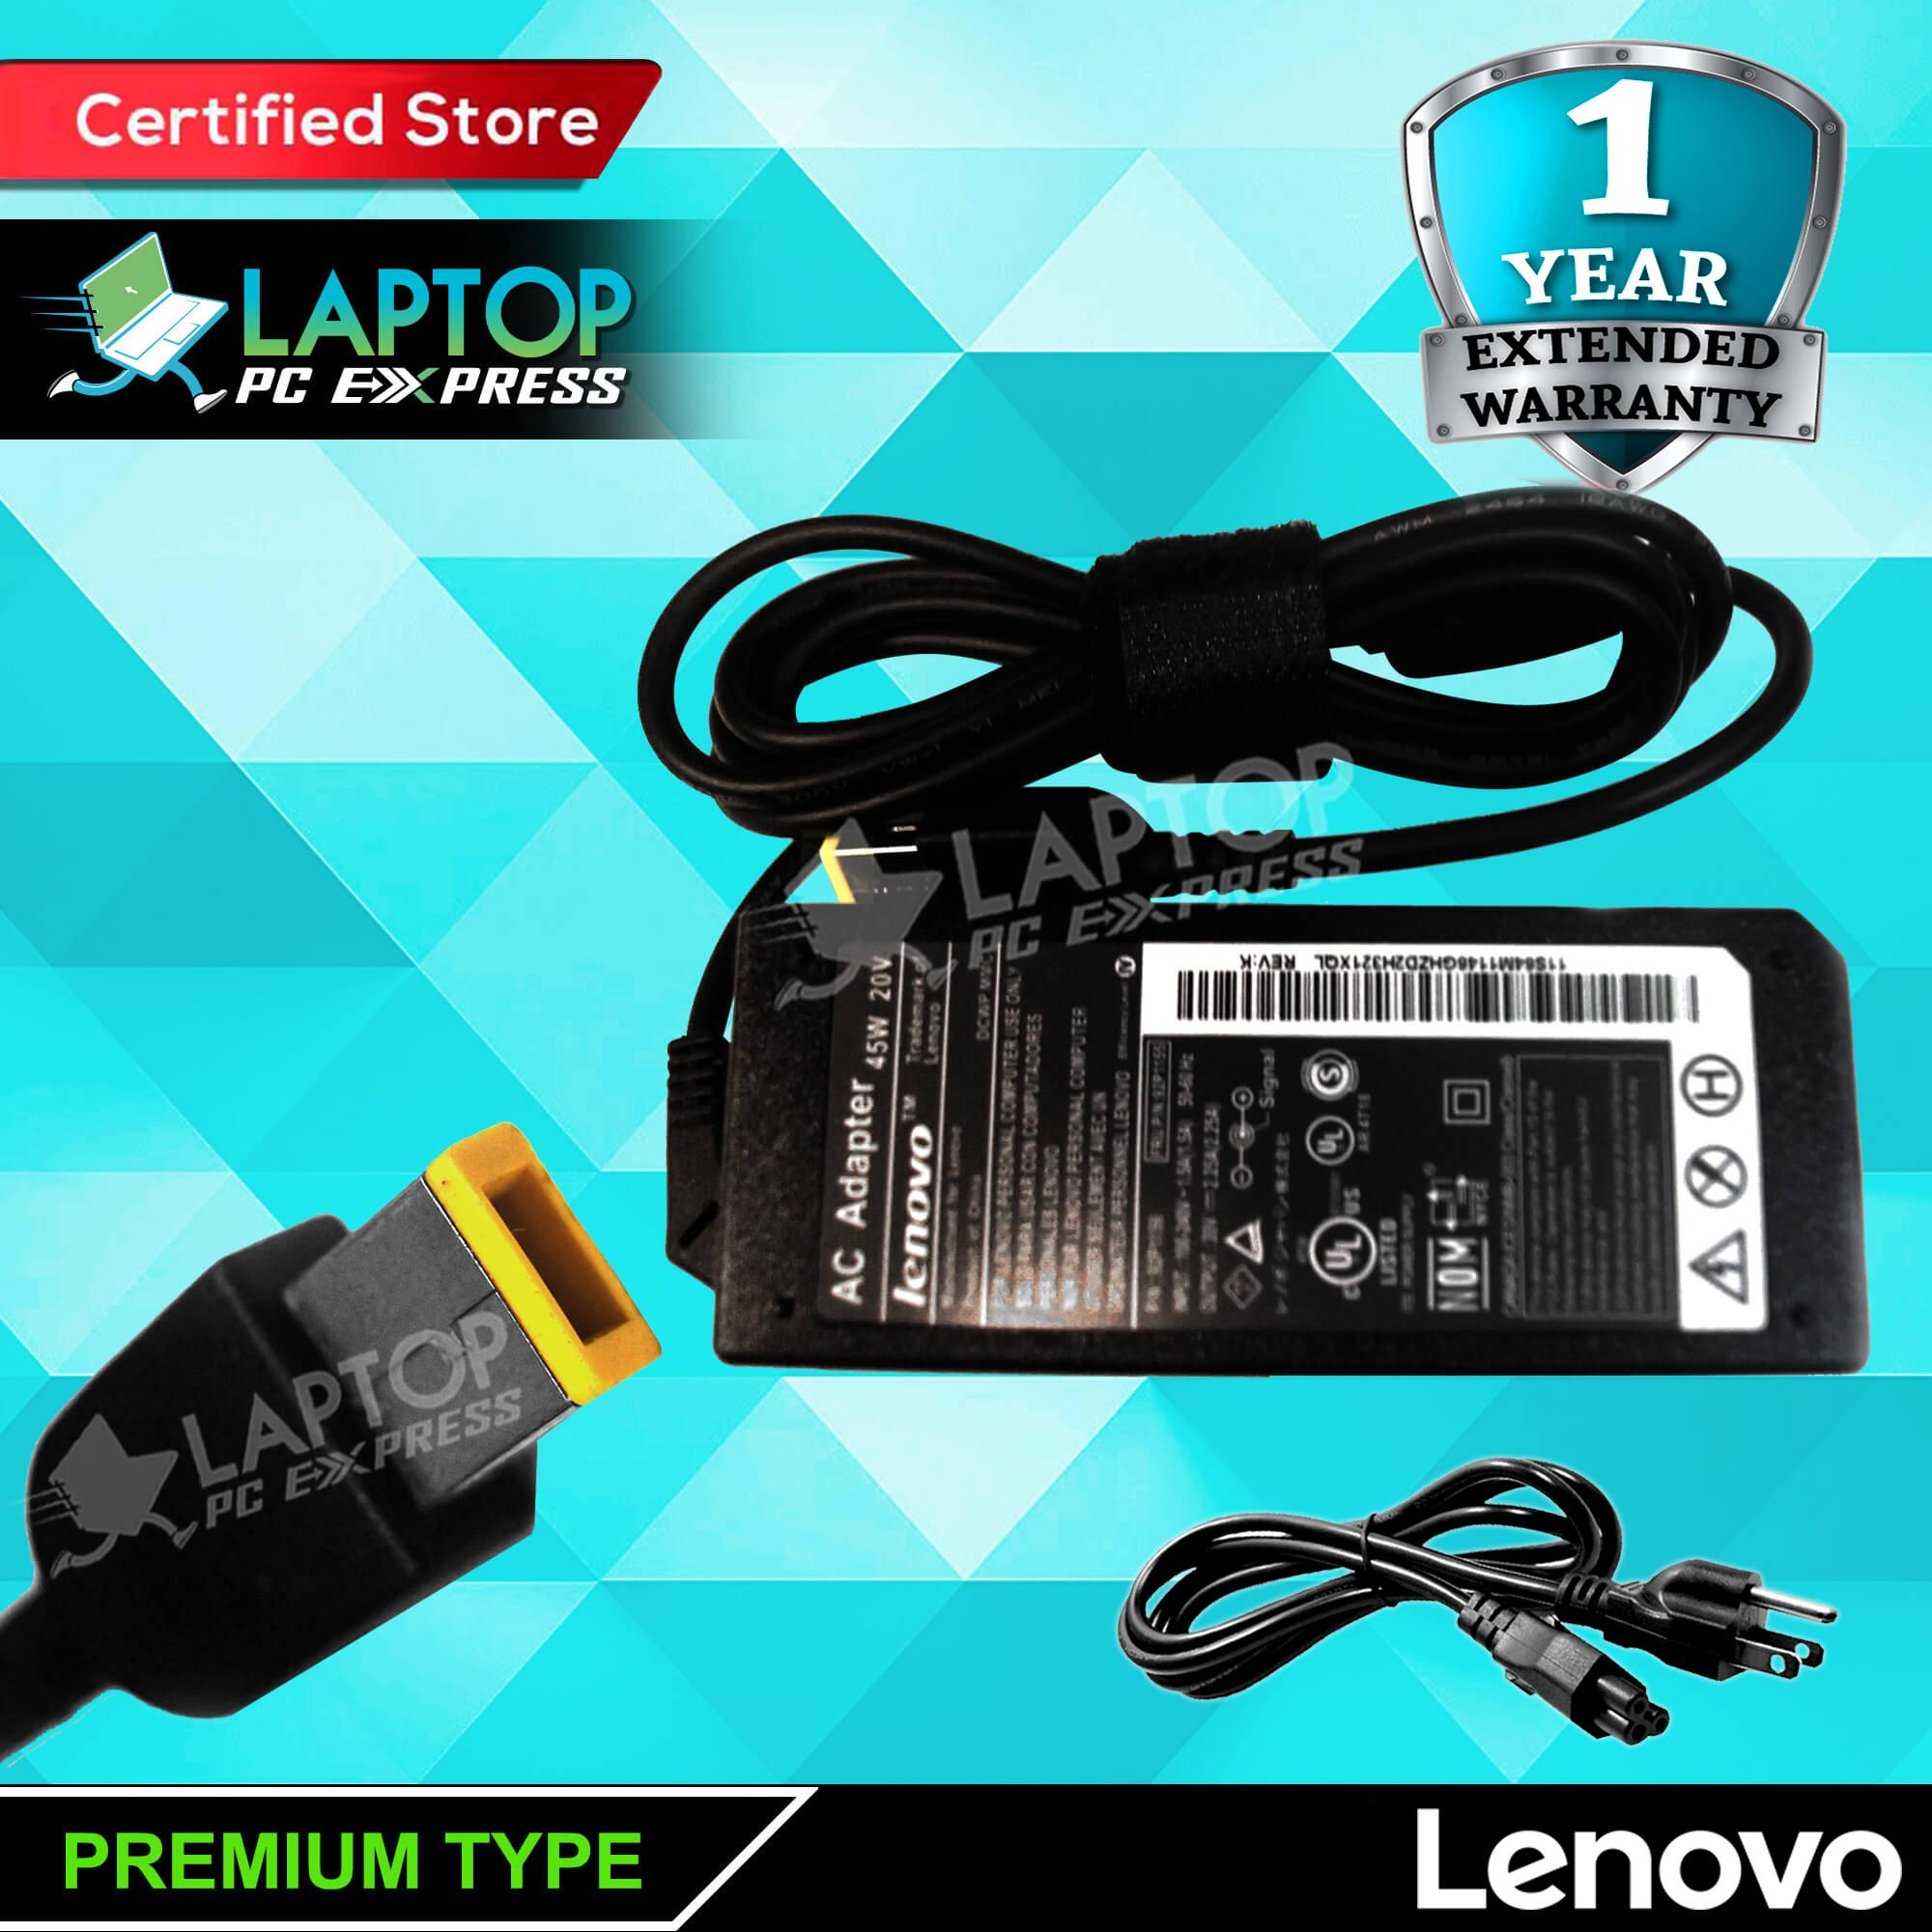 Lenovo Laptop Charger 20V 2 25A Thinkpad , IdeaPad Touch , IdeaPad Series ,  IdeaPad Flex , ThinkPad Edge , ThinkPad , IdeaPad Yoga , G400 G405s G400s,